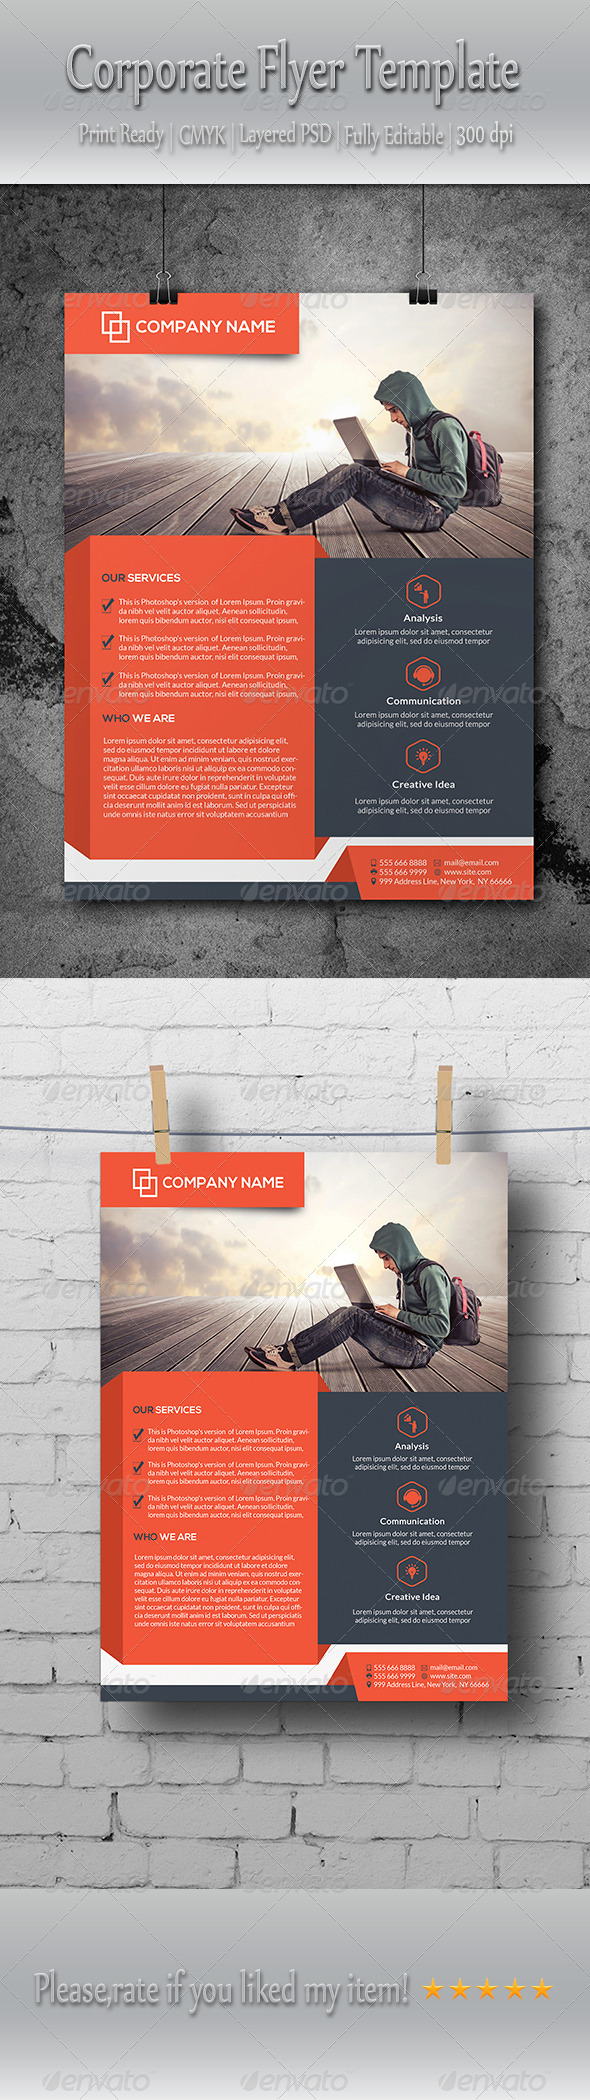 GraphicRiver Corporate Flyer Template 8642034